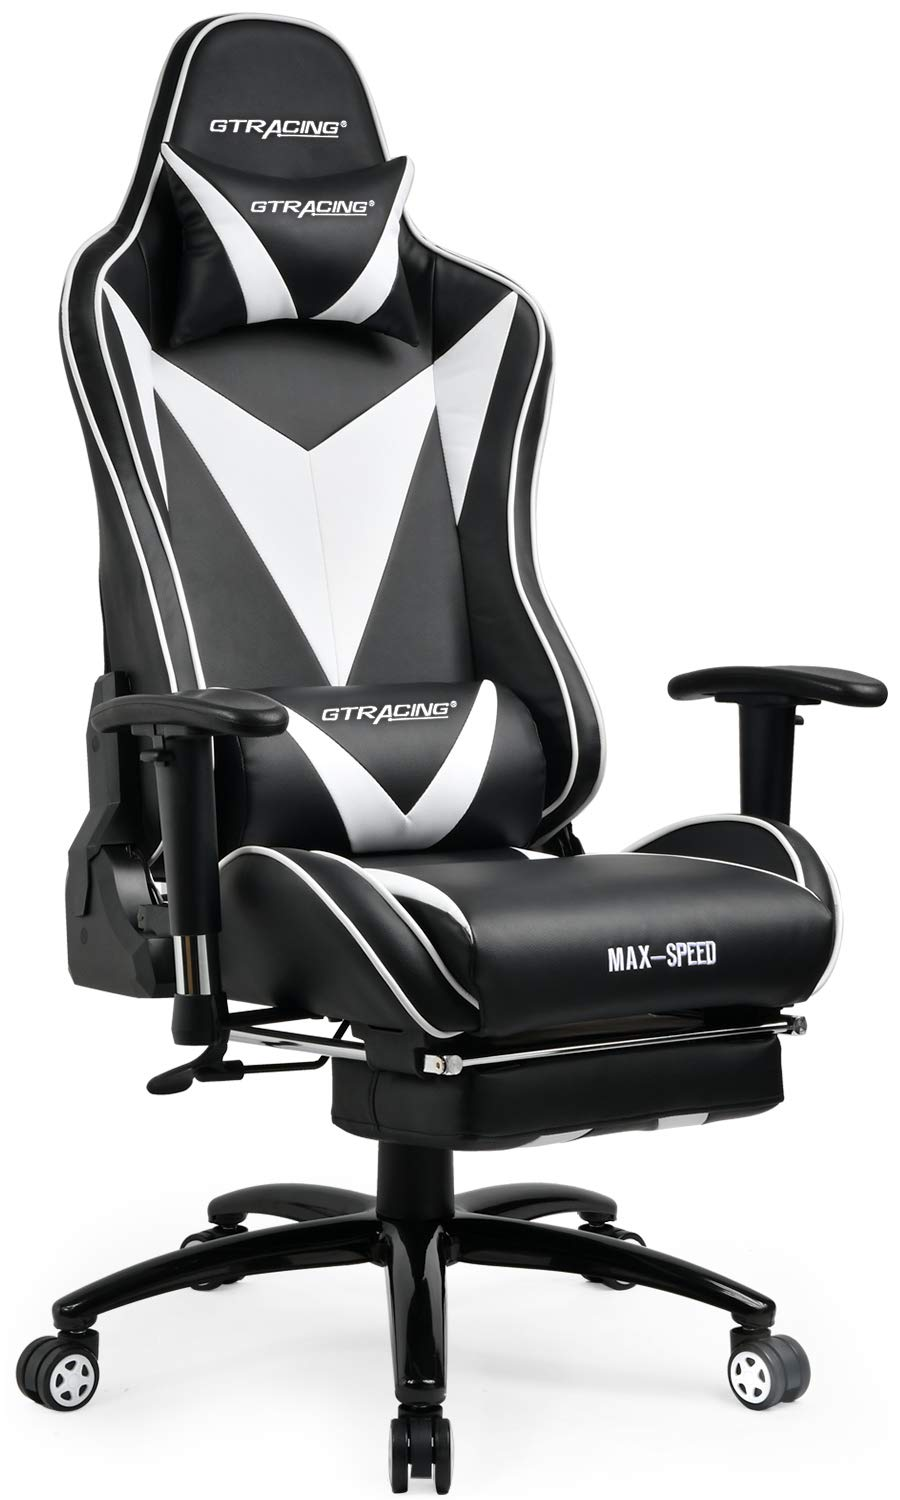 GTRACING Gaming Desk Chair with Footrest Ergonomic Racing High Back Swivel Adjustable Headrest and Lumbar Support Recliner Napping Chair GT004 Black/White by GTRACING